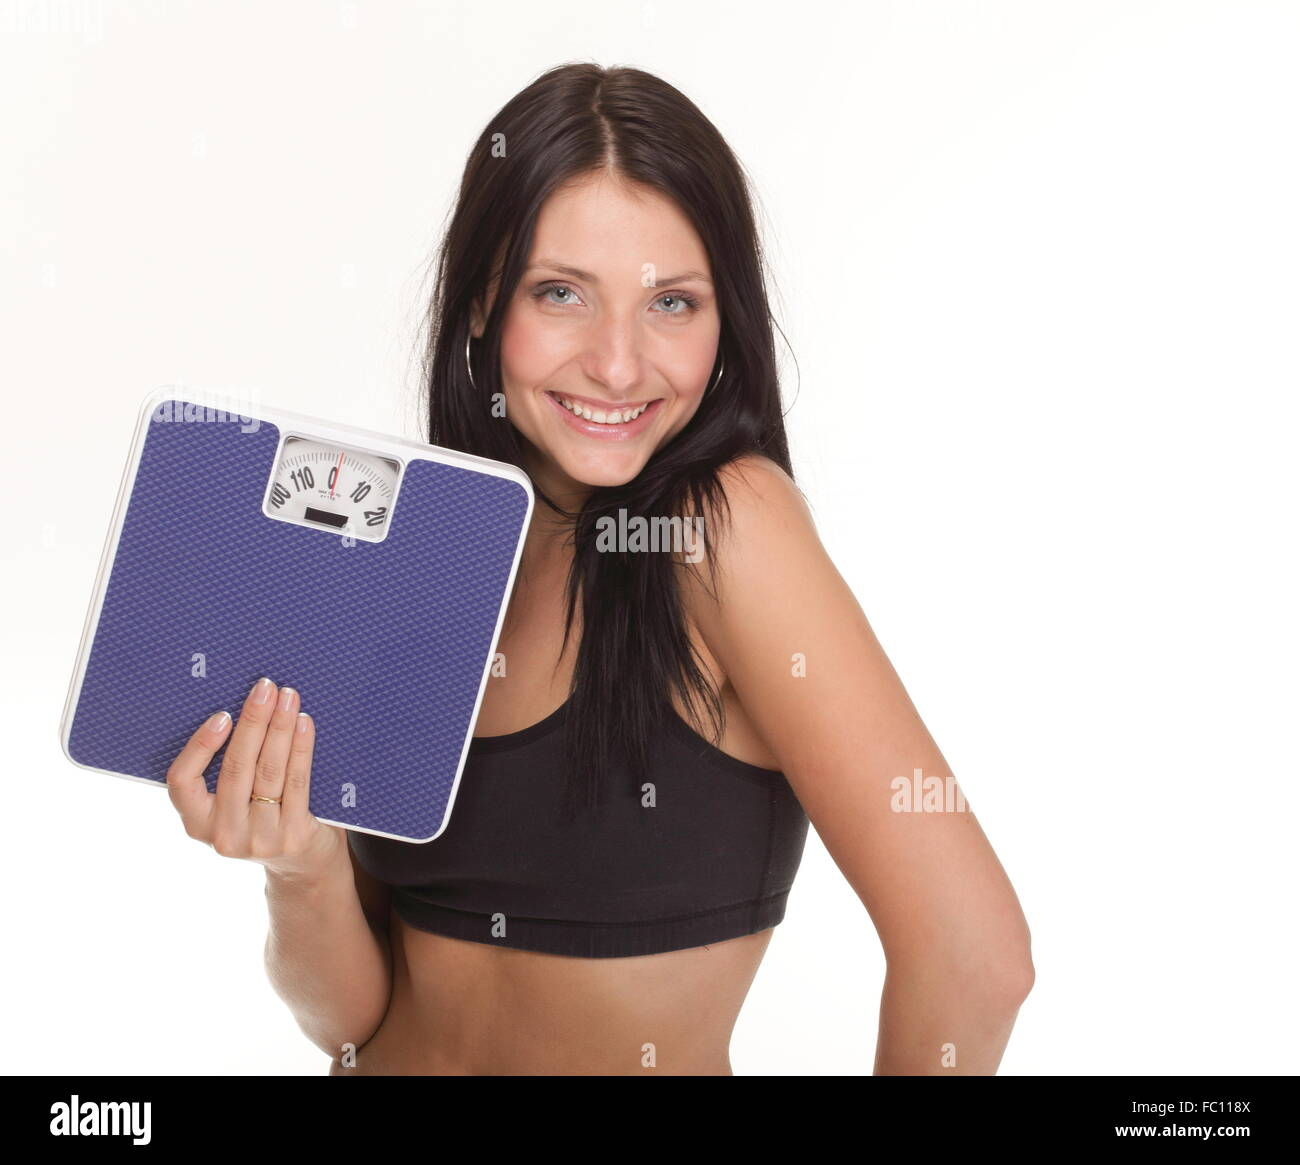 Weight loss woman on scale unhappy - Stock Image